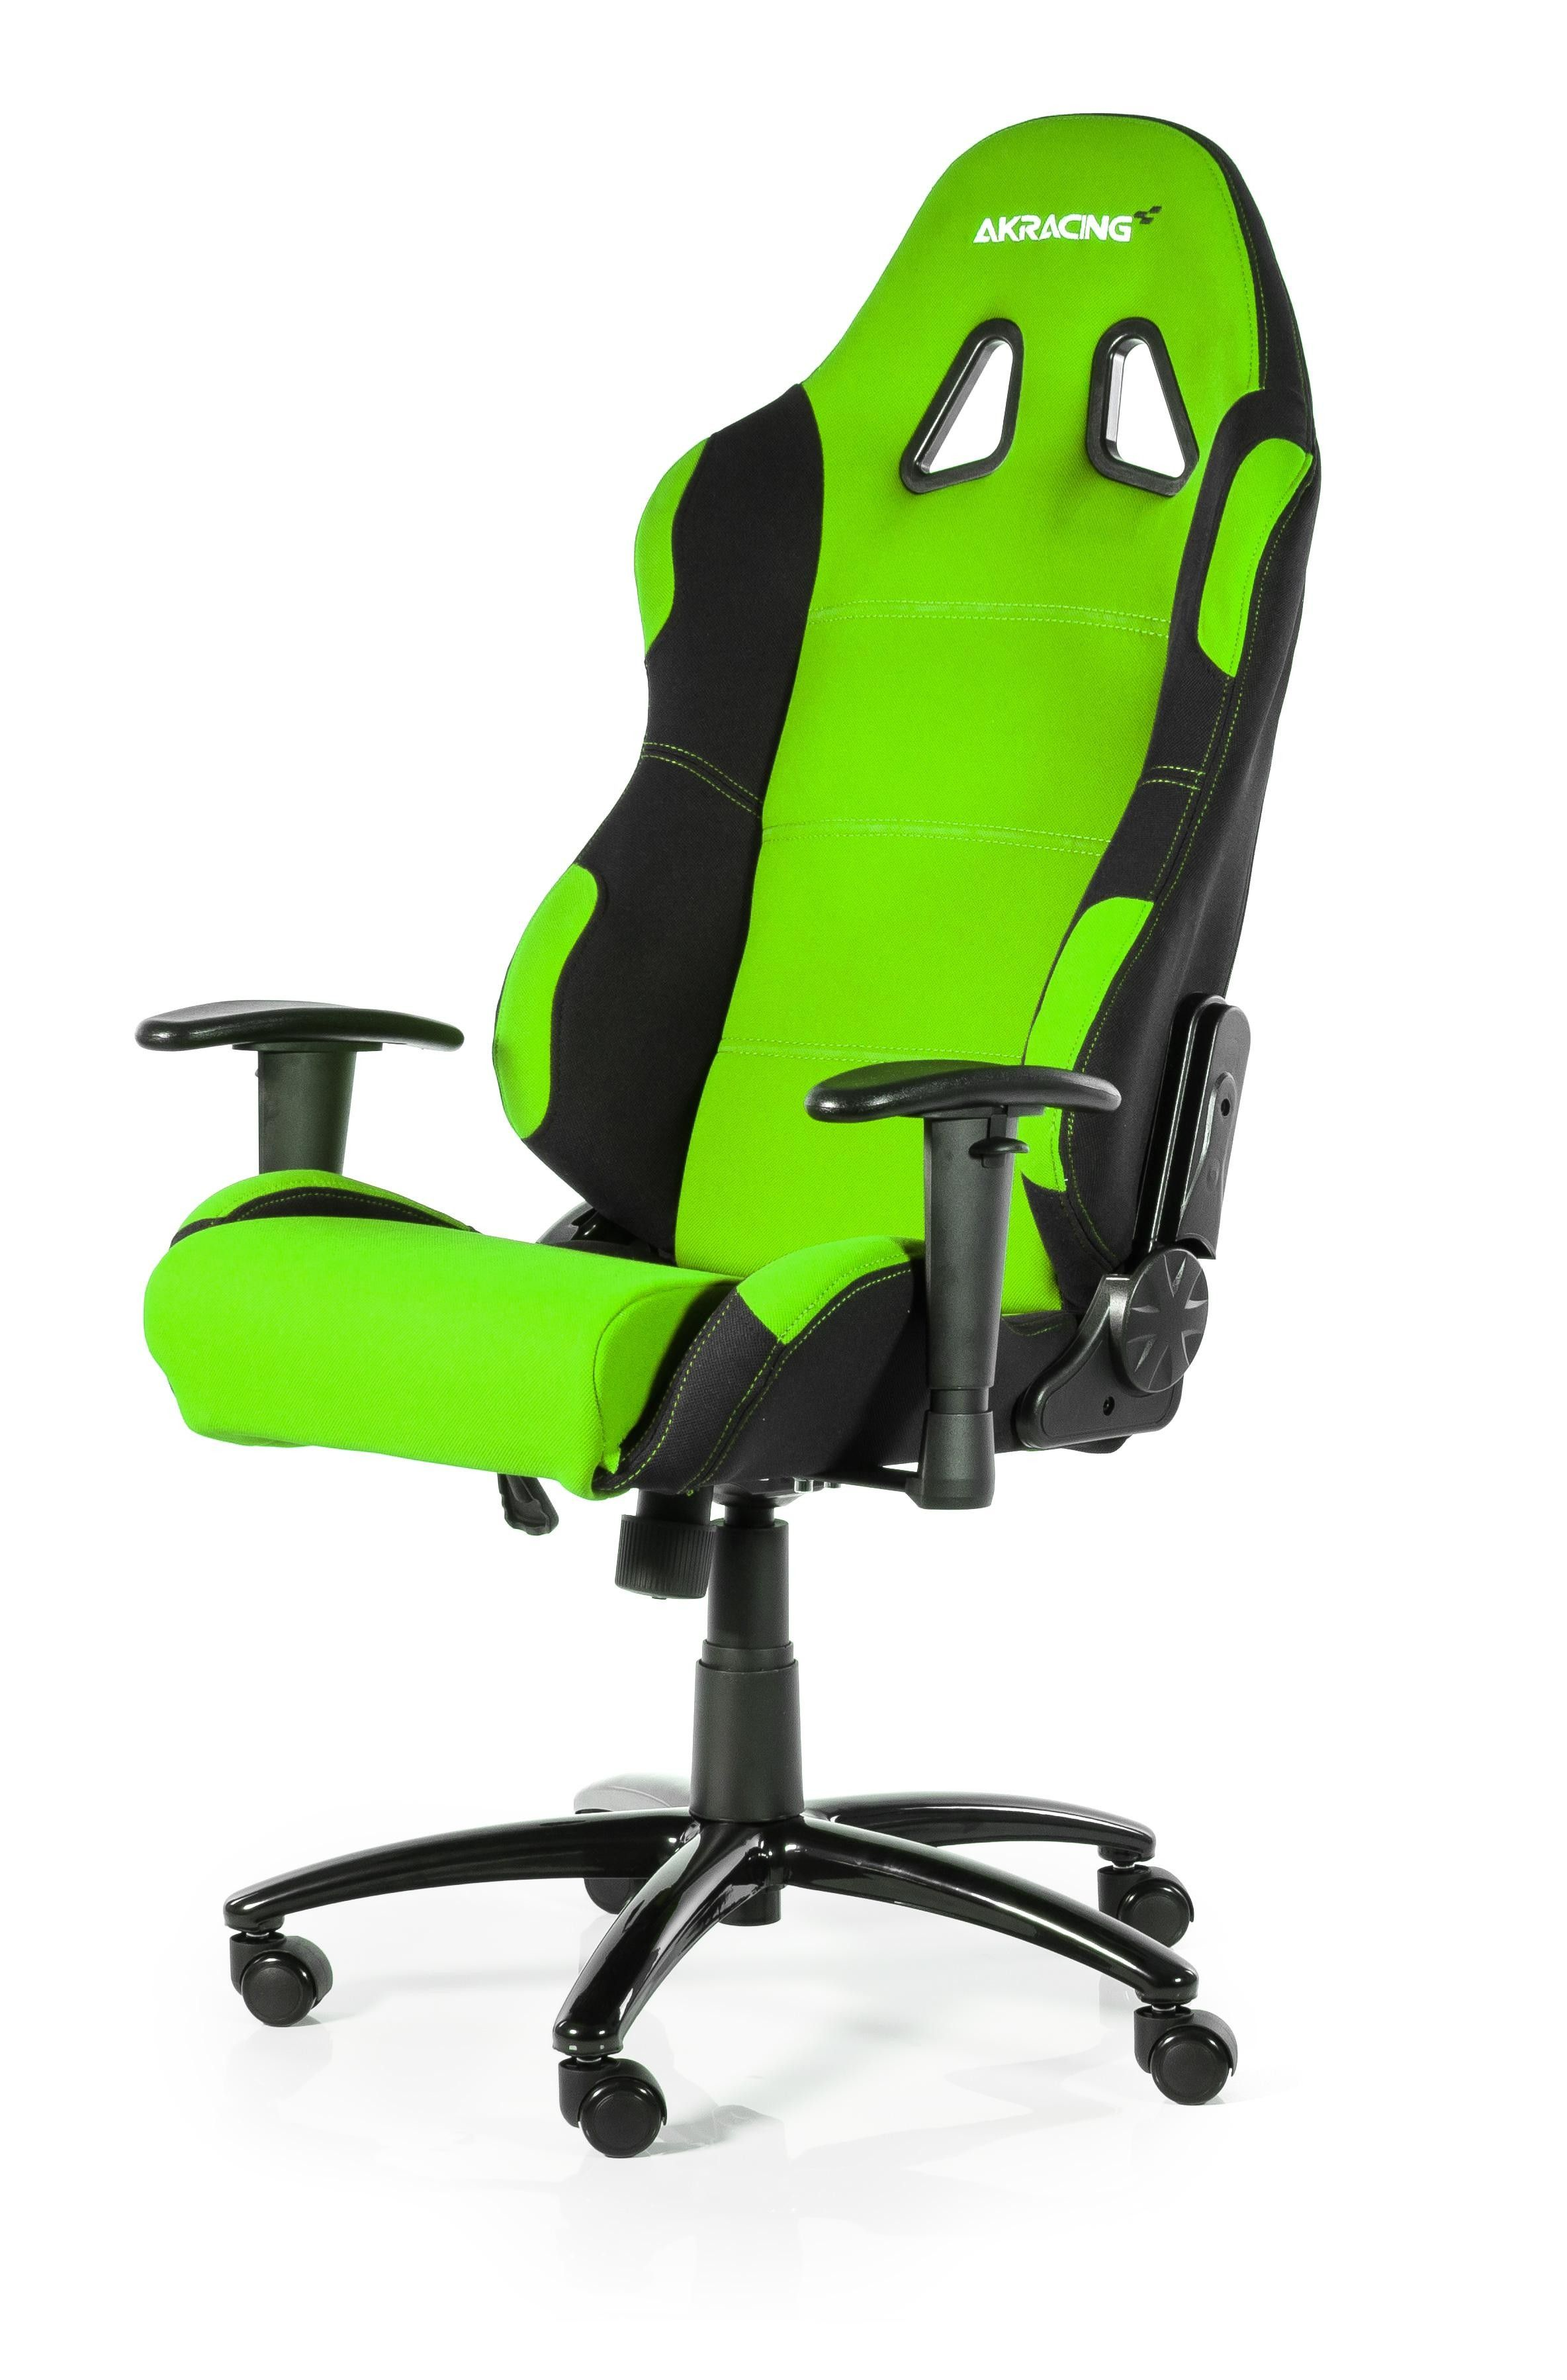 AKRACING Prime Gaming Chair Black Green WRGamers AKRacing